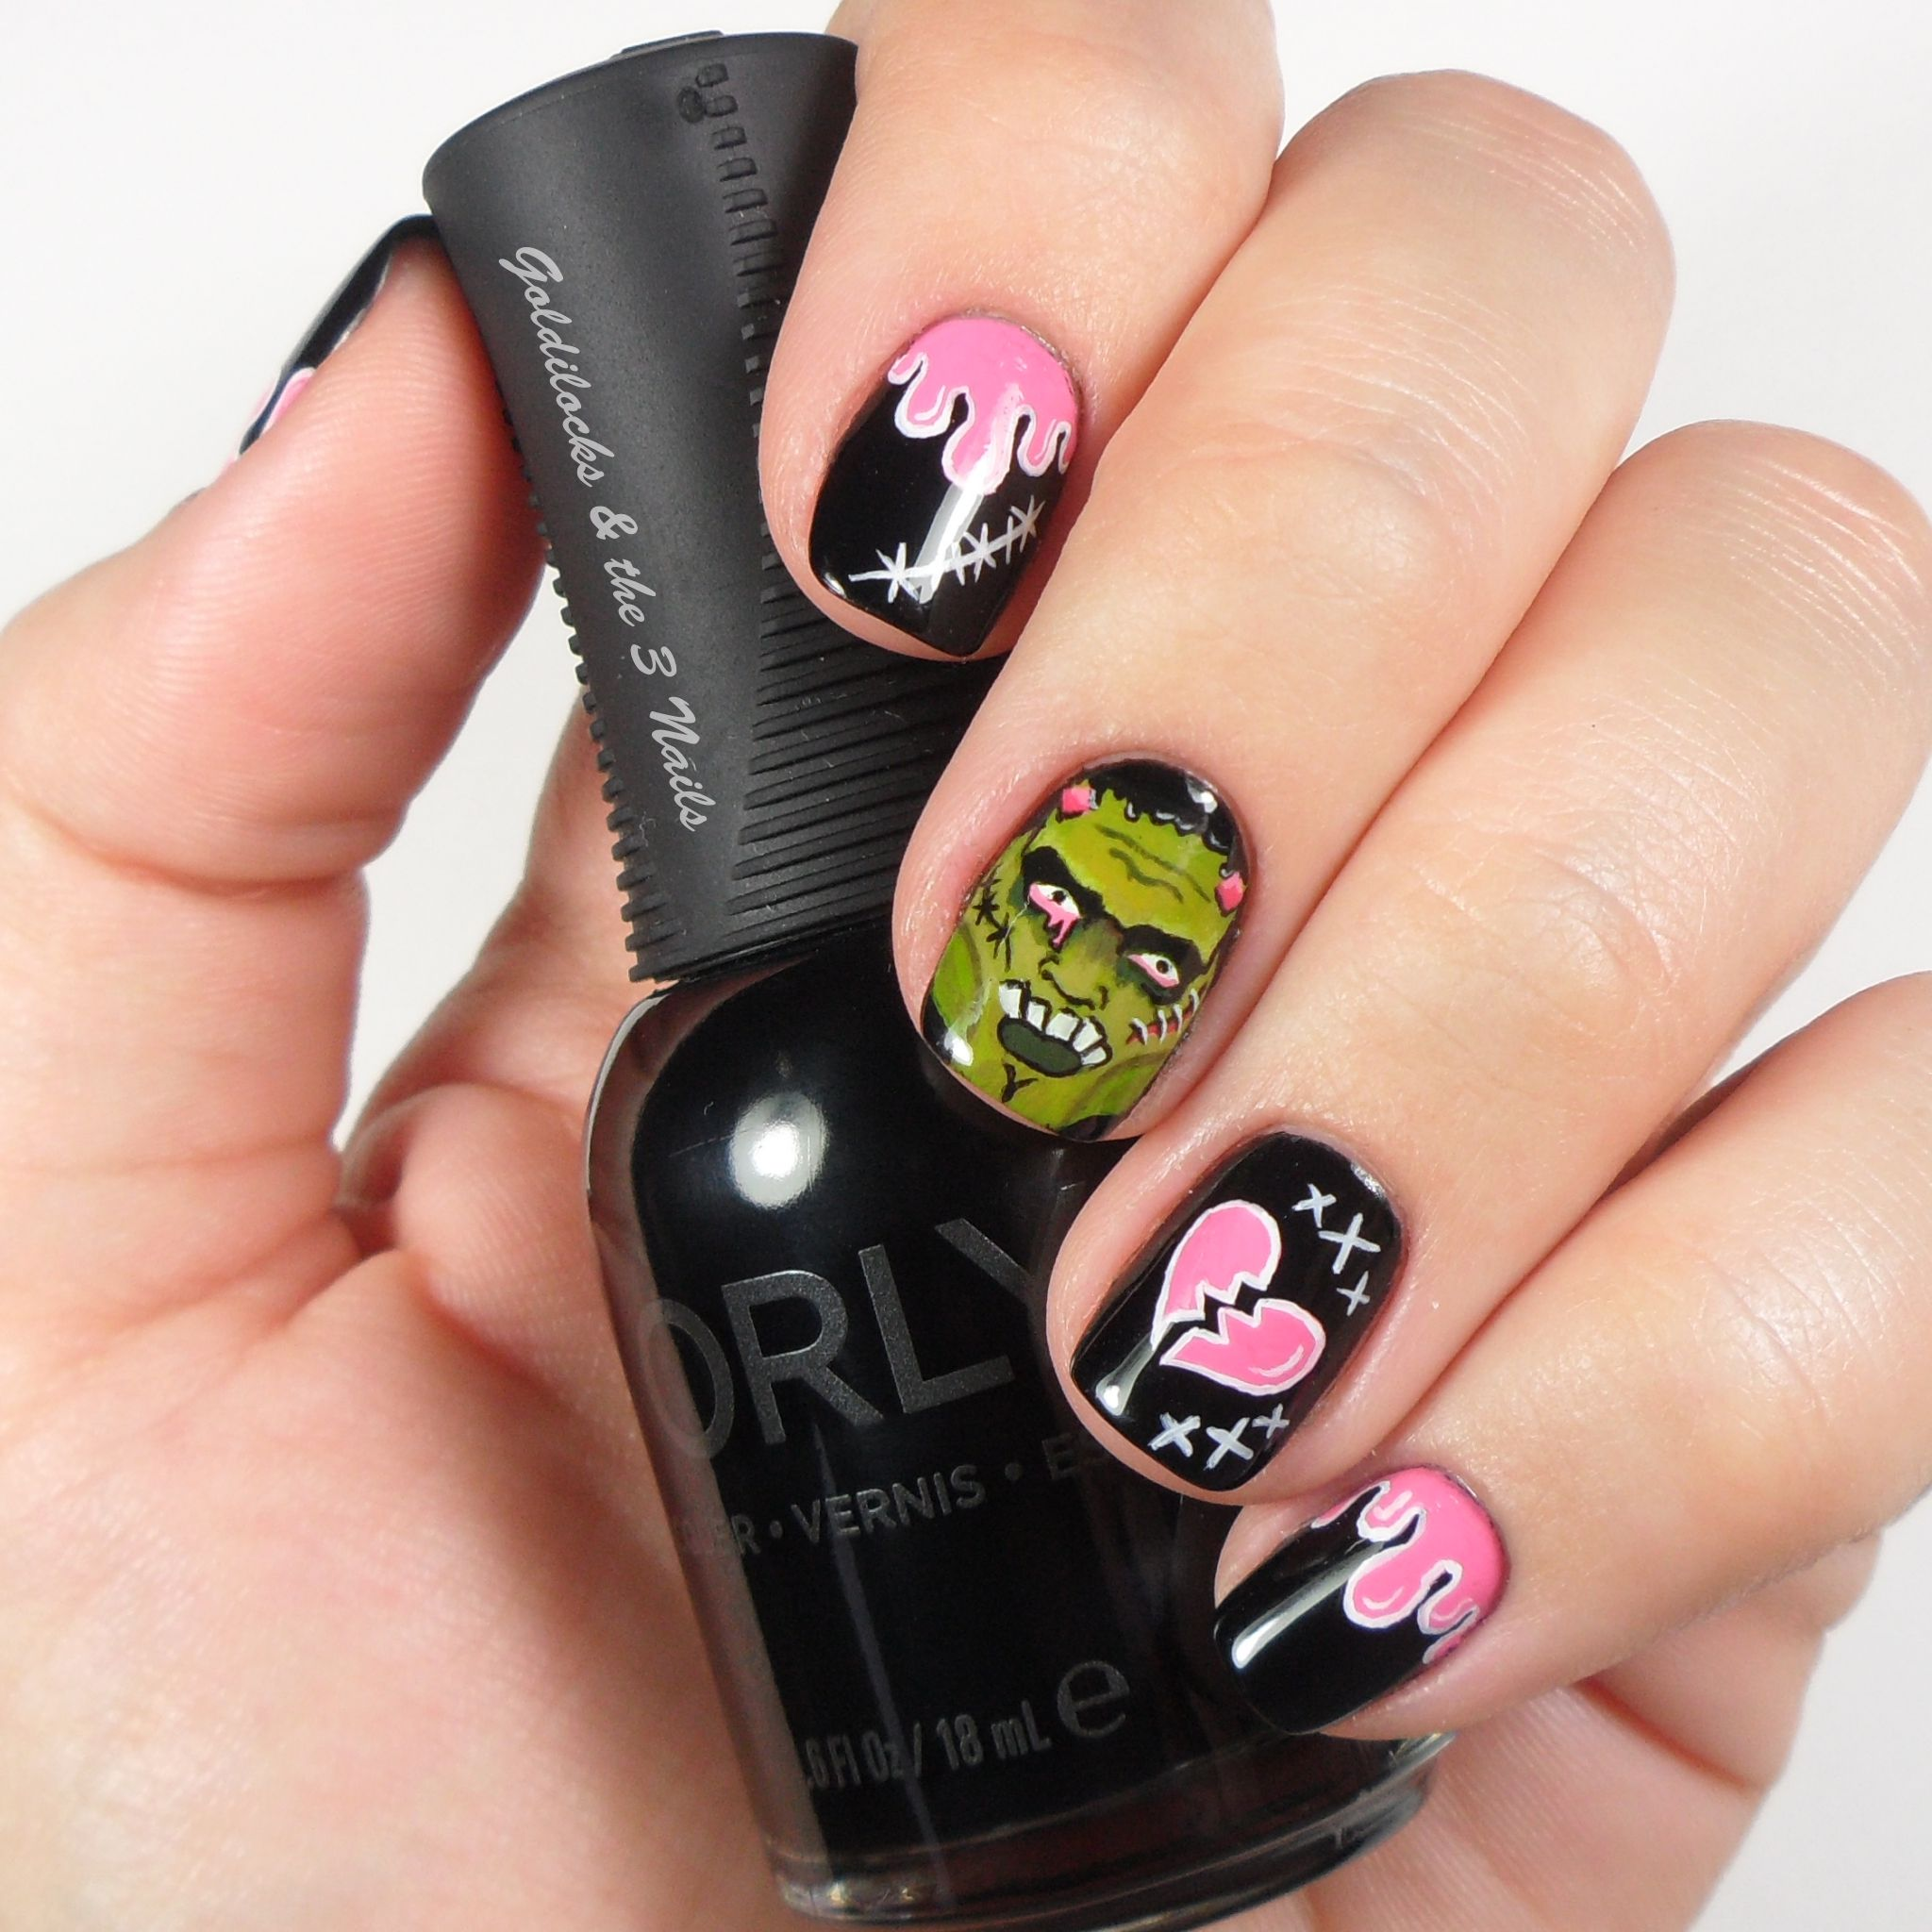 Pop Art Frankenstein Nail Art (With images) | Pop art ...